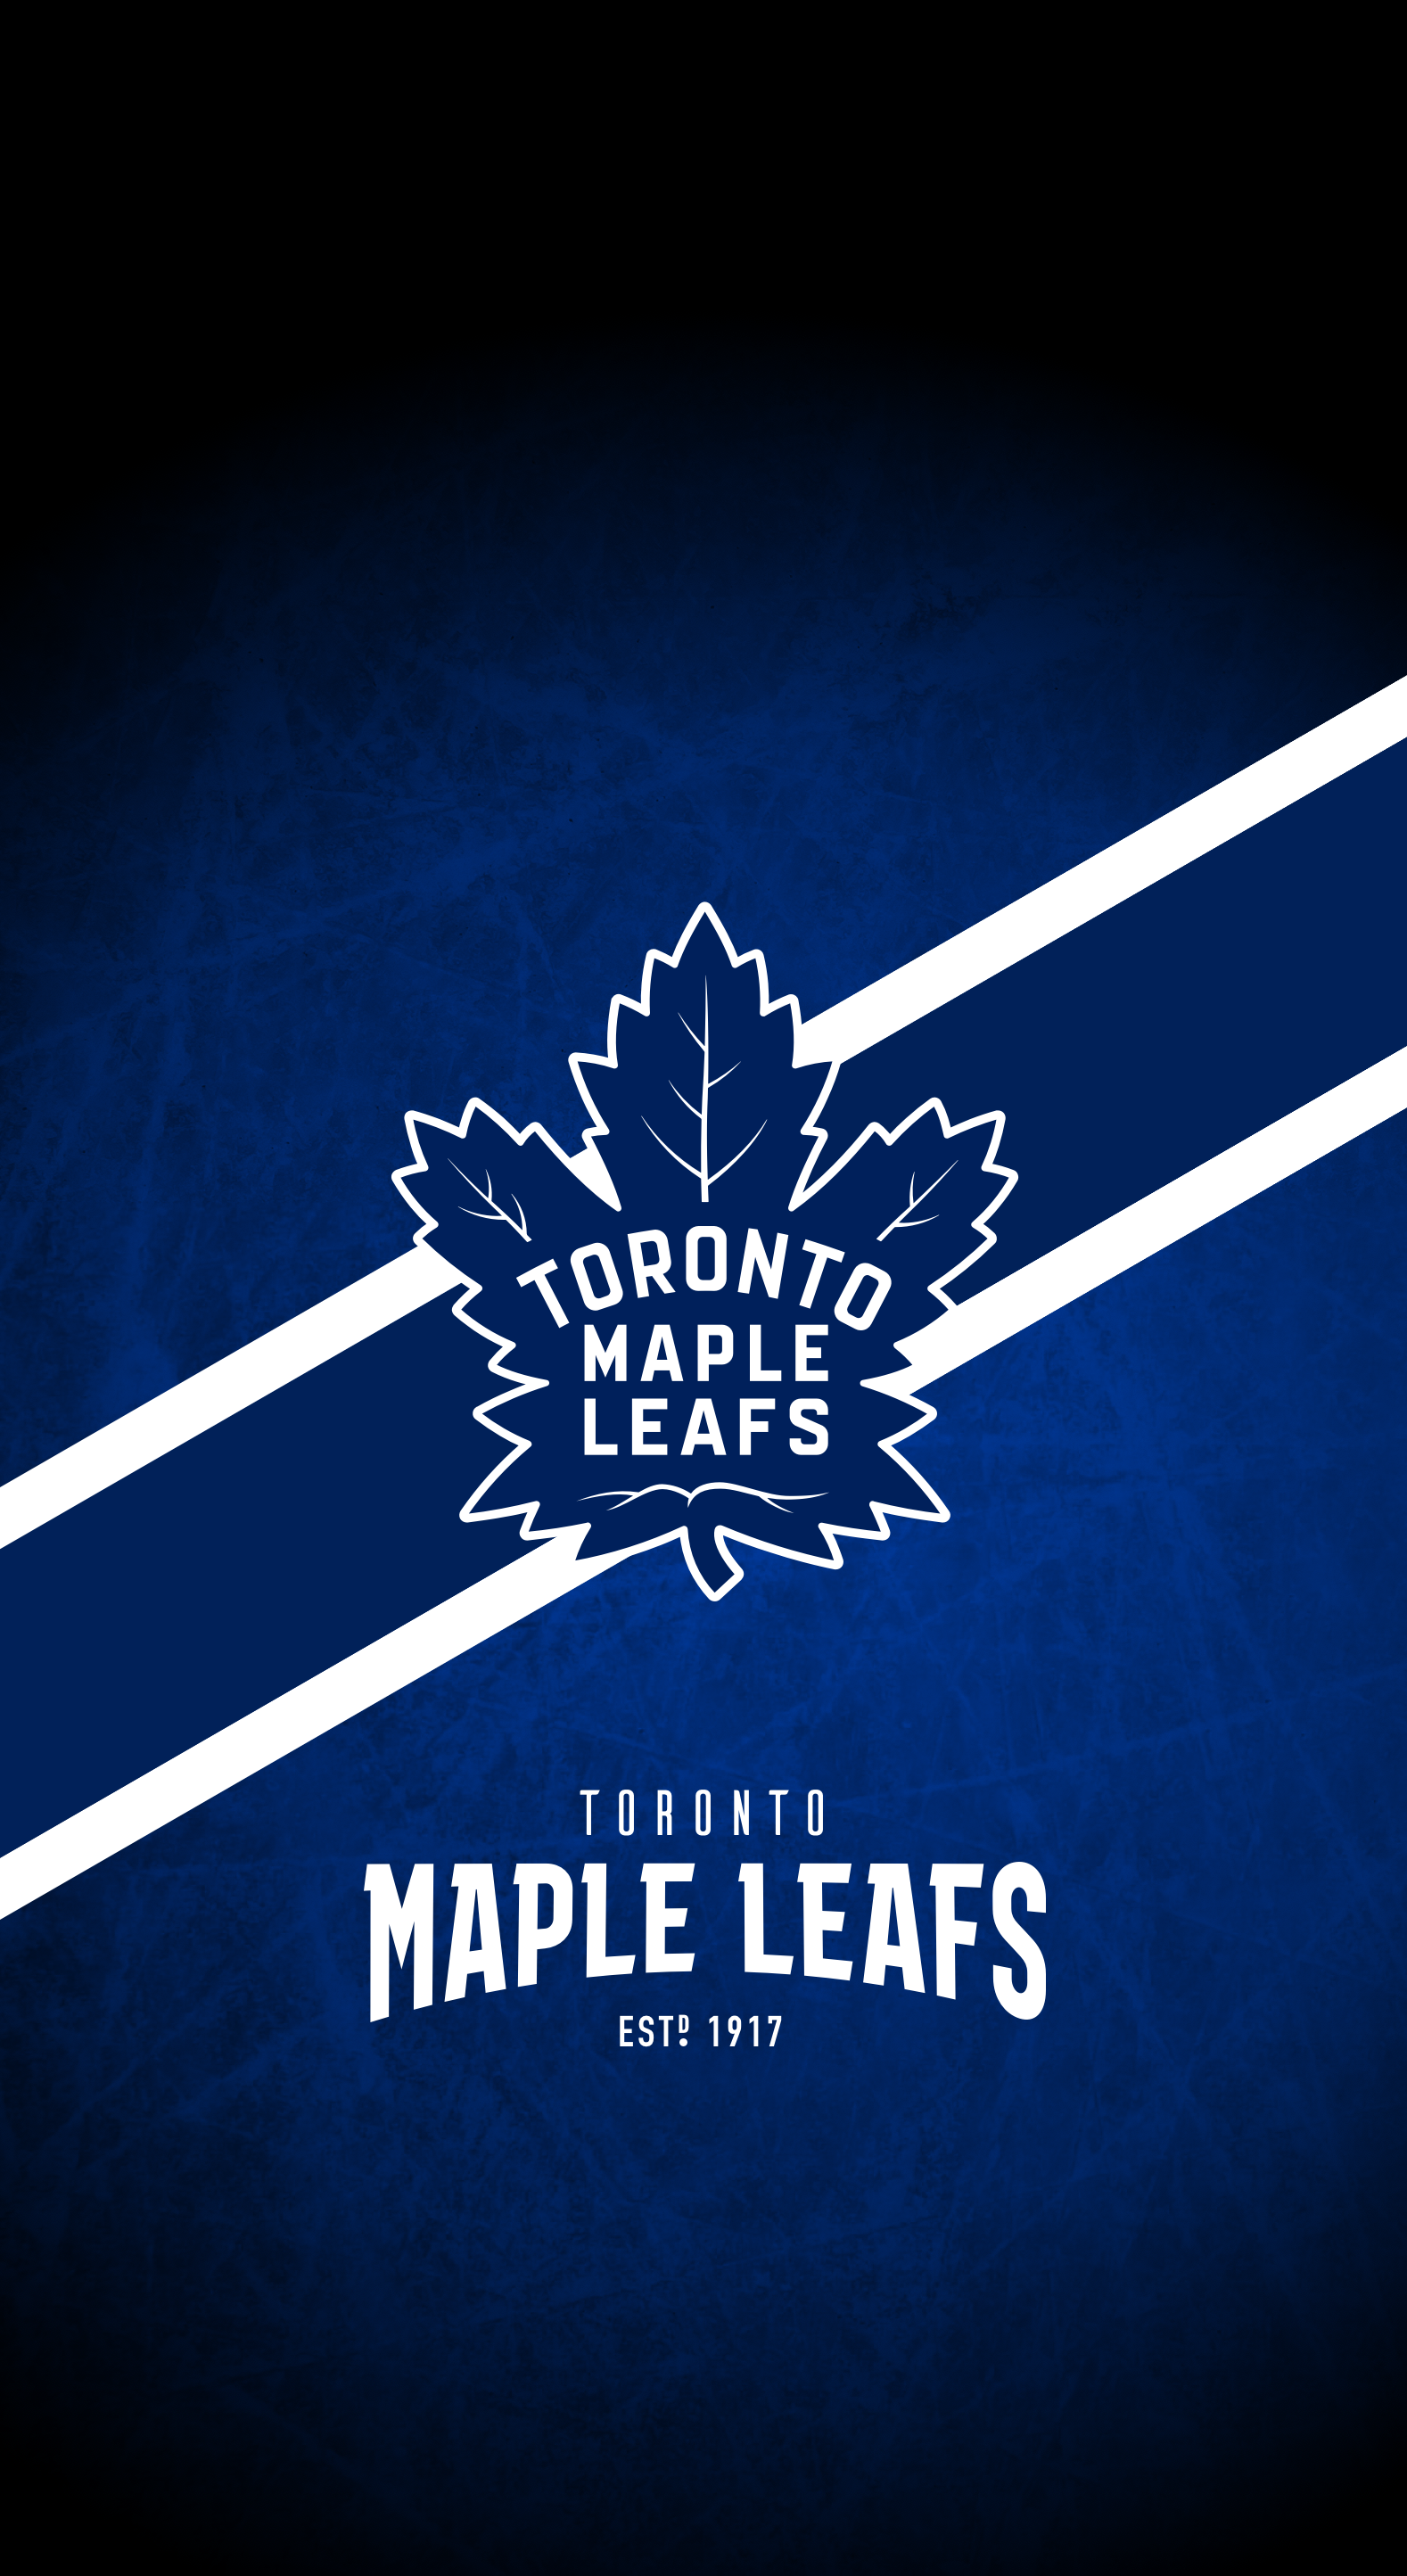 Toronto Maple Leafs Wallpapers Top Free Toronto Maple Leafs Backgrounds Wallpaperaccess